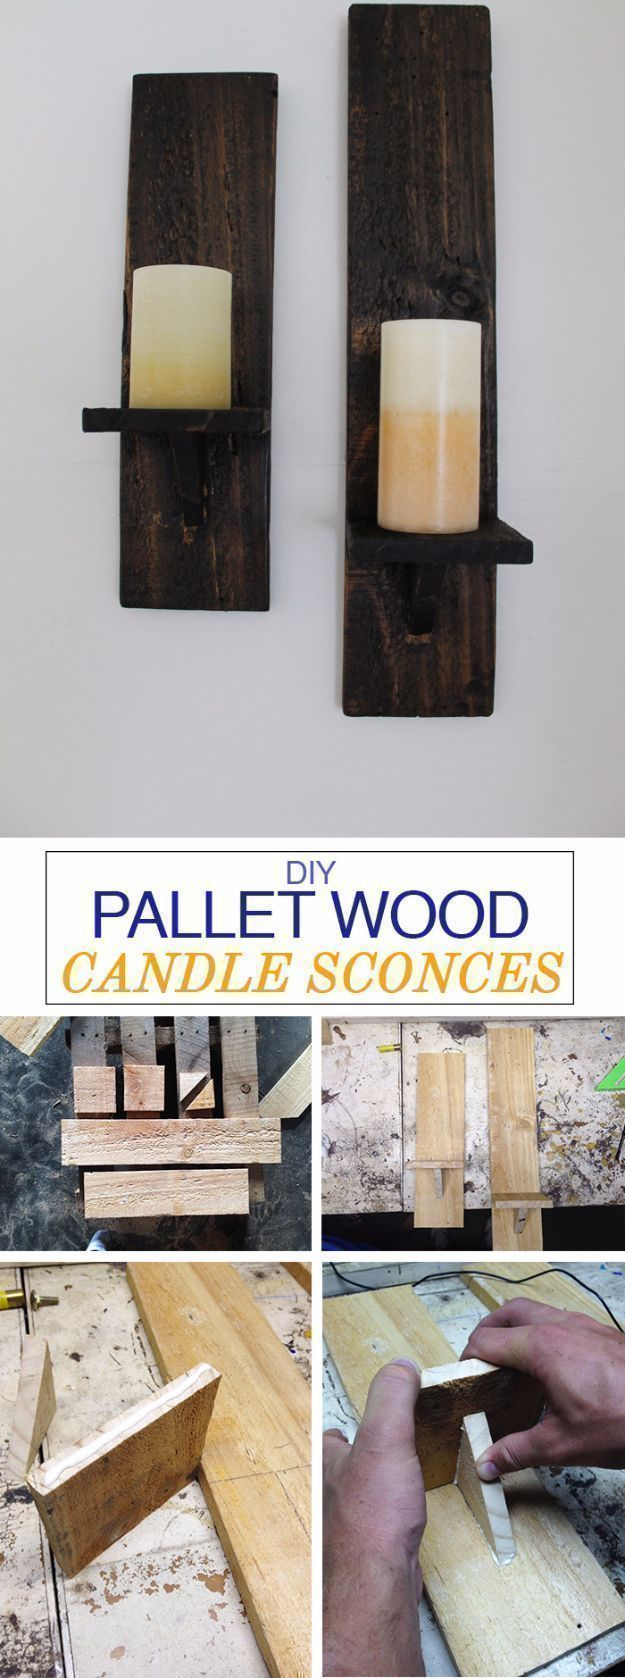 Best DIY Pallet Furniture Ideas - DIY Pallet Wood Candle Sconces - Cool Pallet Tables, Sofas, End Tables, Coffee Table, Bookcases, Wine Rack, Beds and Shelves - Rustic Wooden Pallet Furniture Made Easy With Step by Step Tutorials - Quick DIY Projects and Crafts by DIY Joy http://diyjoy.com/best-diy-pallet-furniture-ideas #woodworkingprojects #WoodworkingPlansWineRack #palletfurnitureeasy #rusticfurniturediy #wineracks #coolwoodprojects #diyfurniture #candles #diysofa #sofaideas